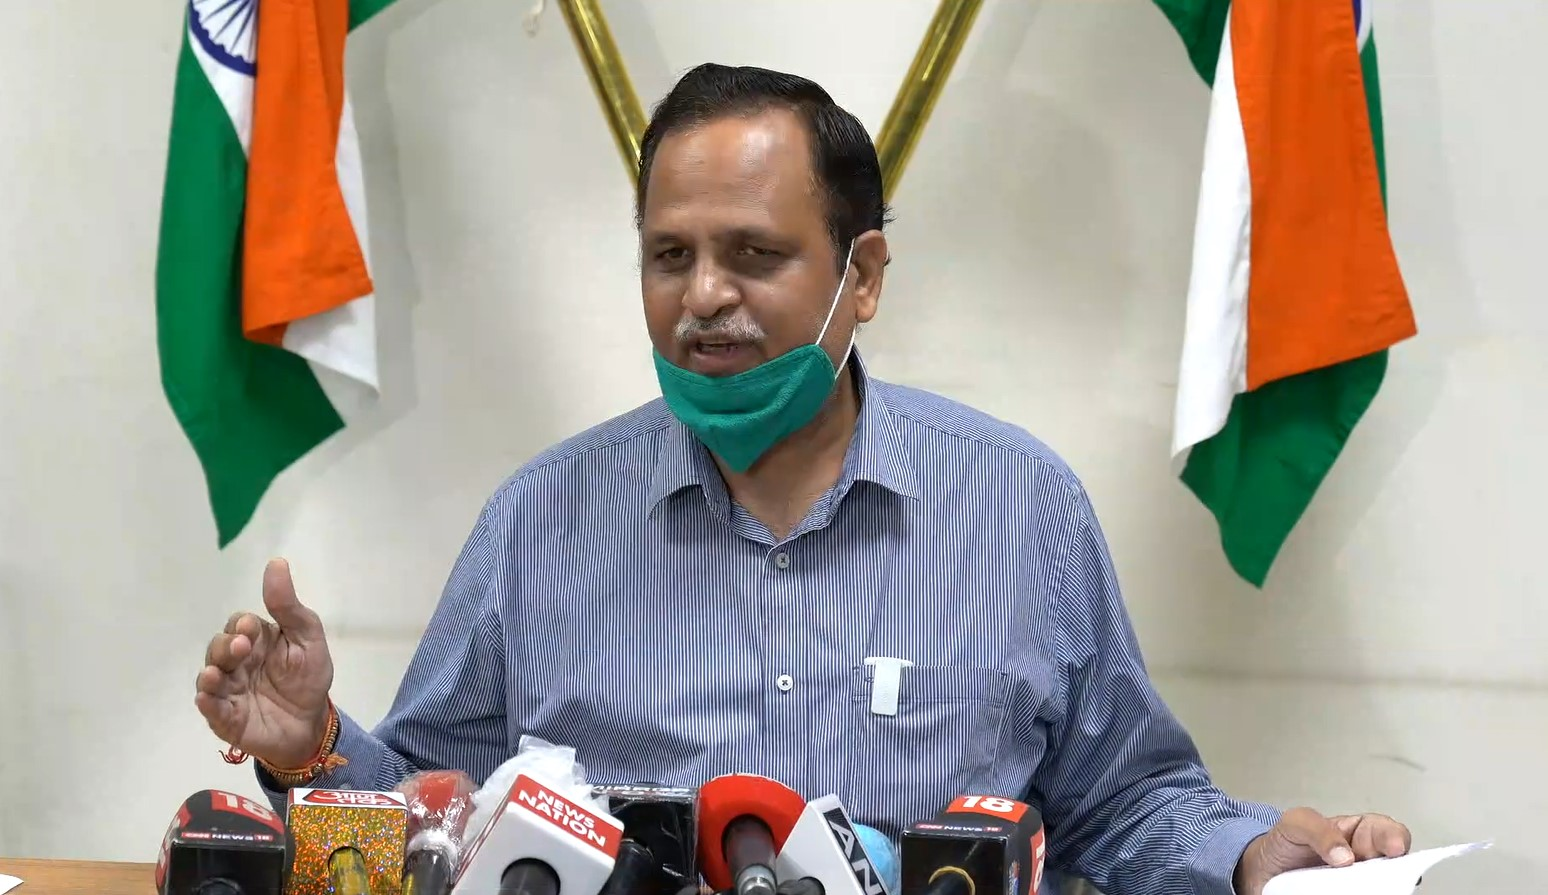 Delhi's real COVID-19 infection rate is 41 times higher: SeroSurvey